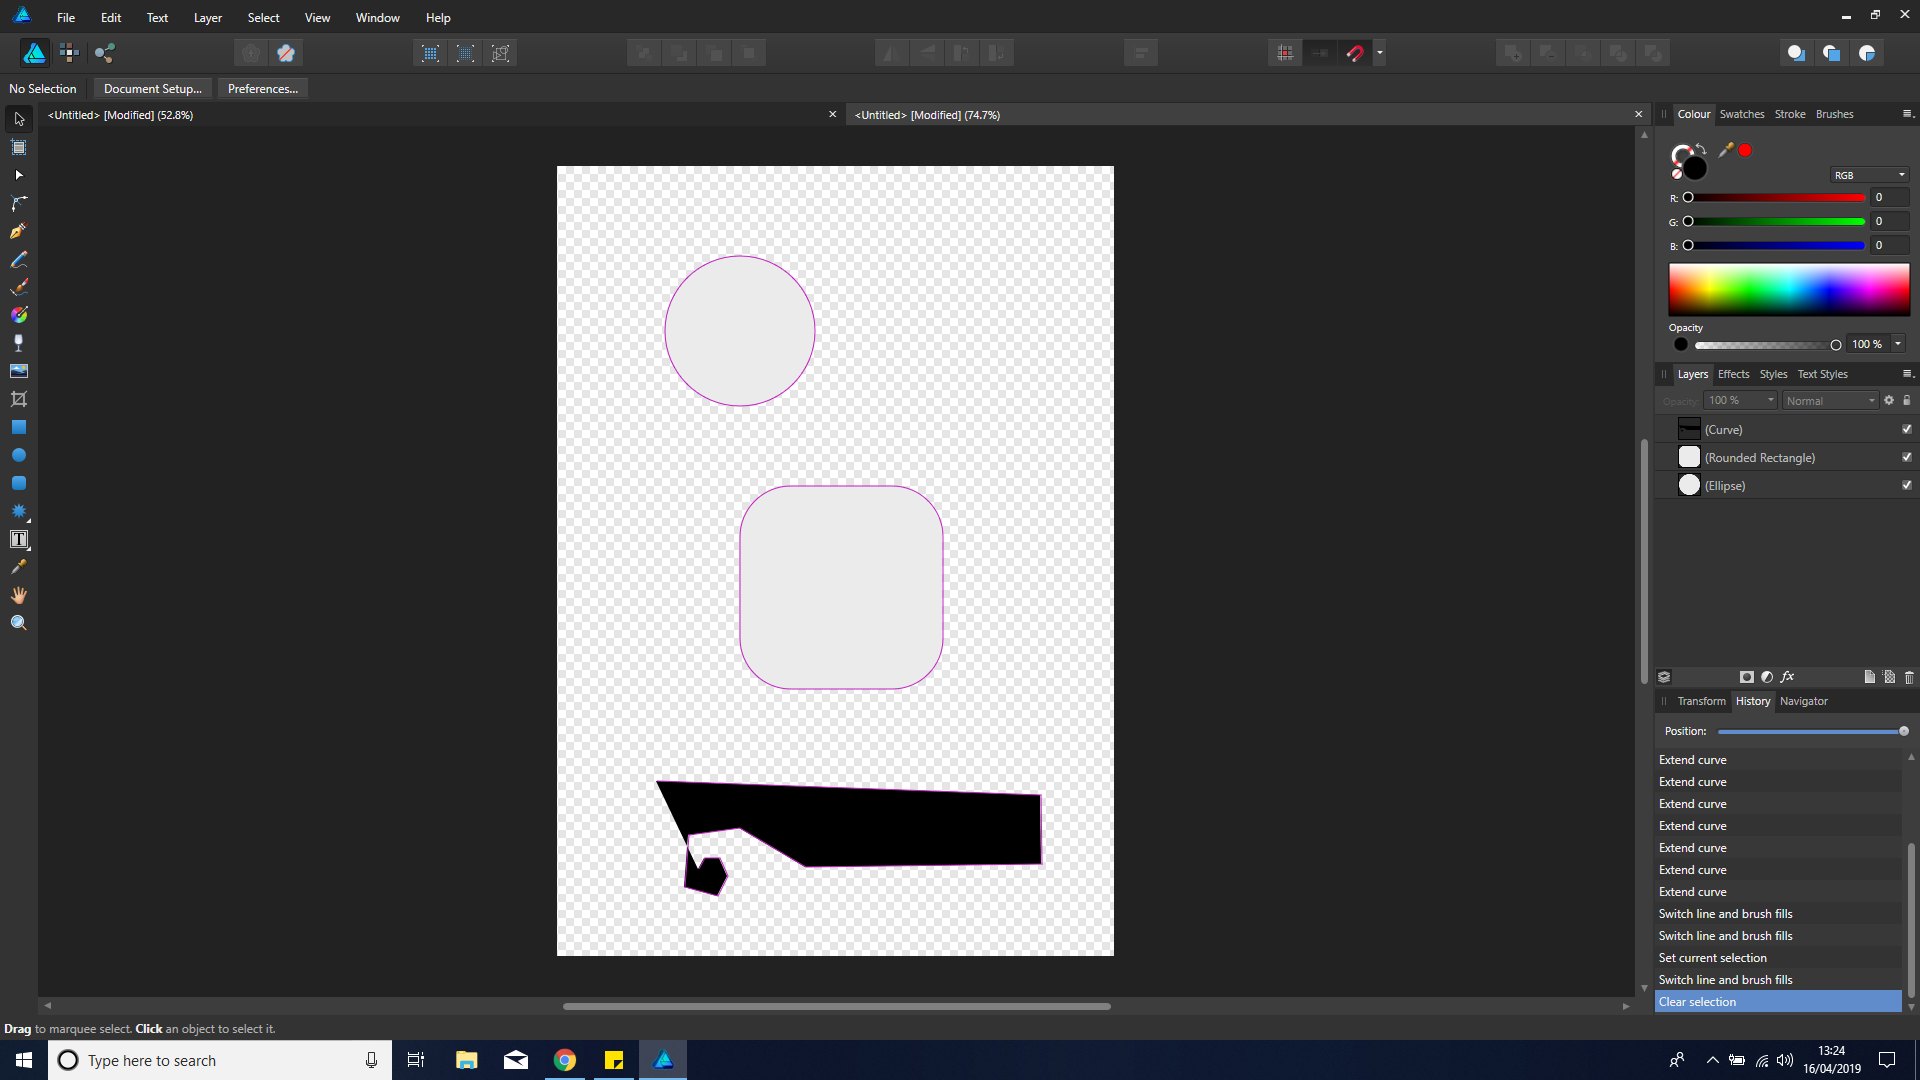 AD: Every shape has a purple outline but I have no outline selected